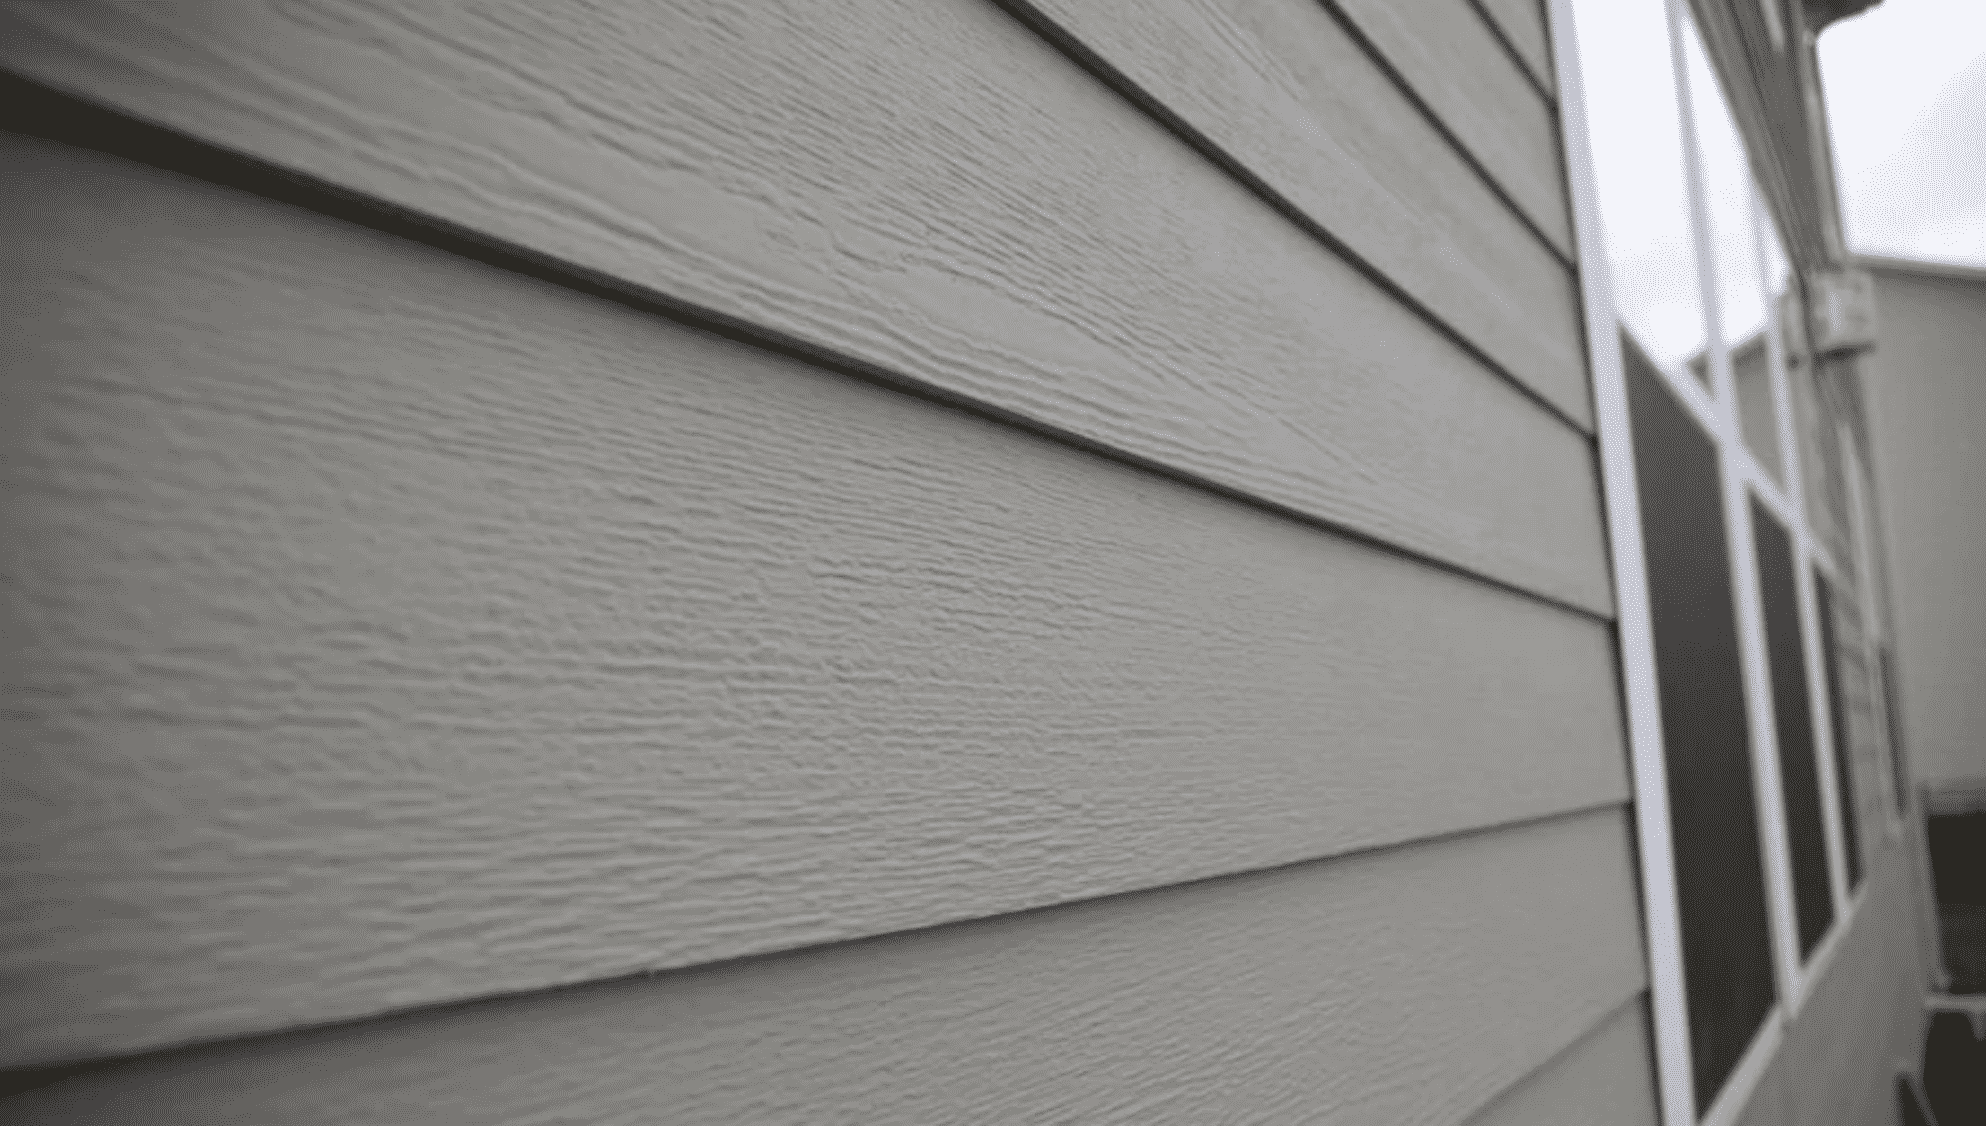 Quality Vinyl Siding Can Make Your Home Look Very Beautiful